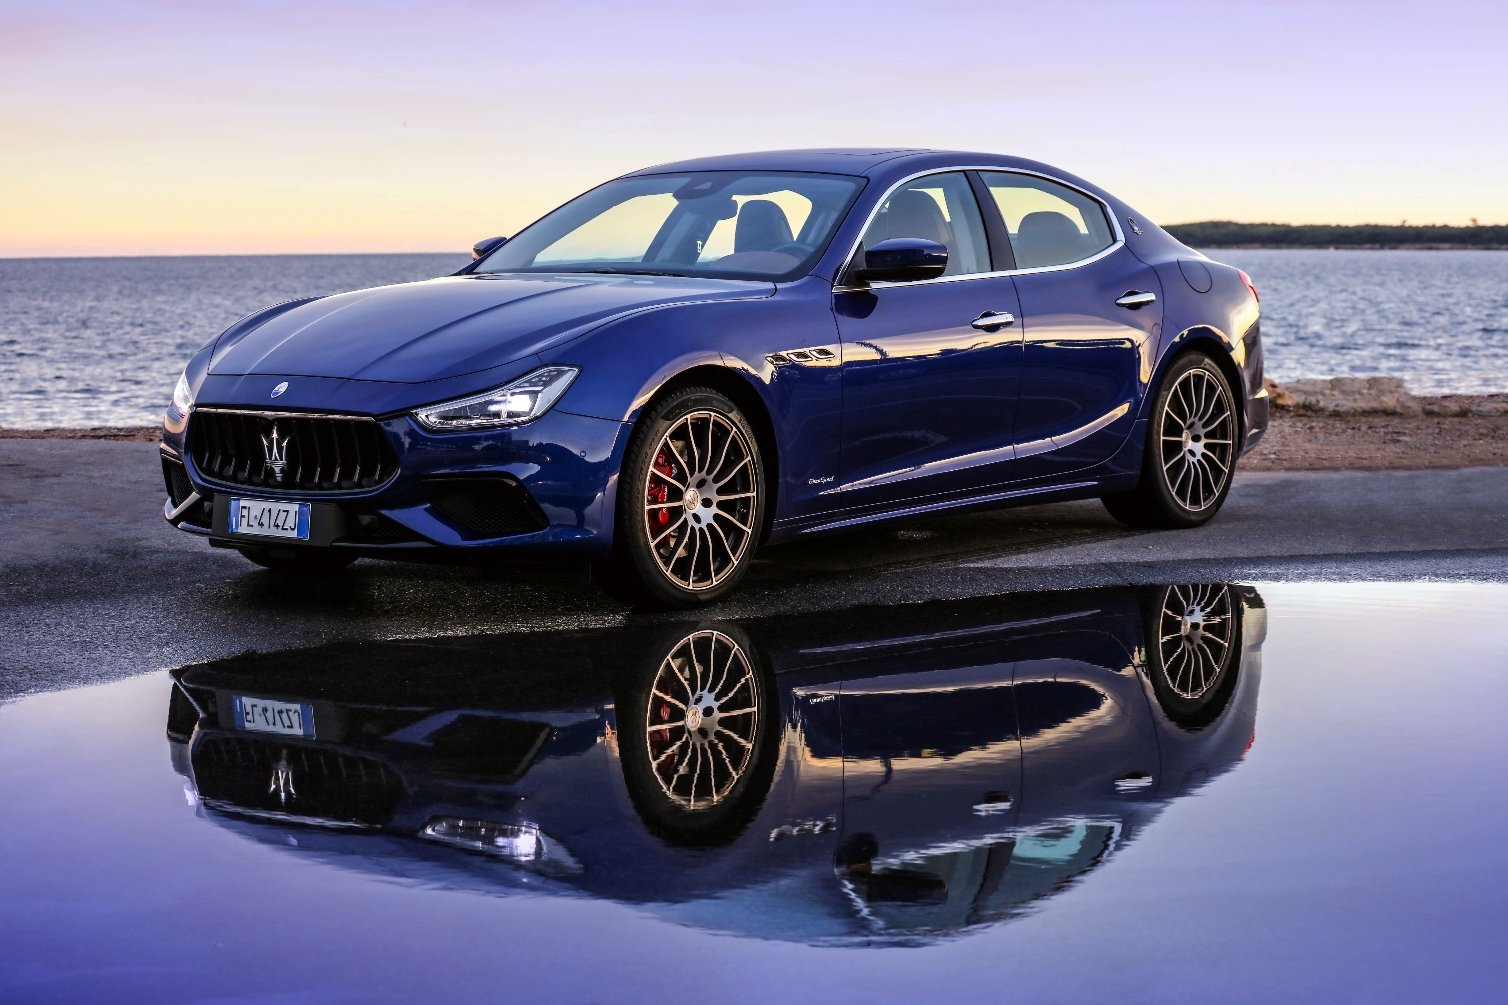 Maserati boosts Ghibli styling and performance for 2018